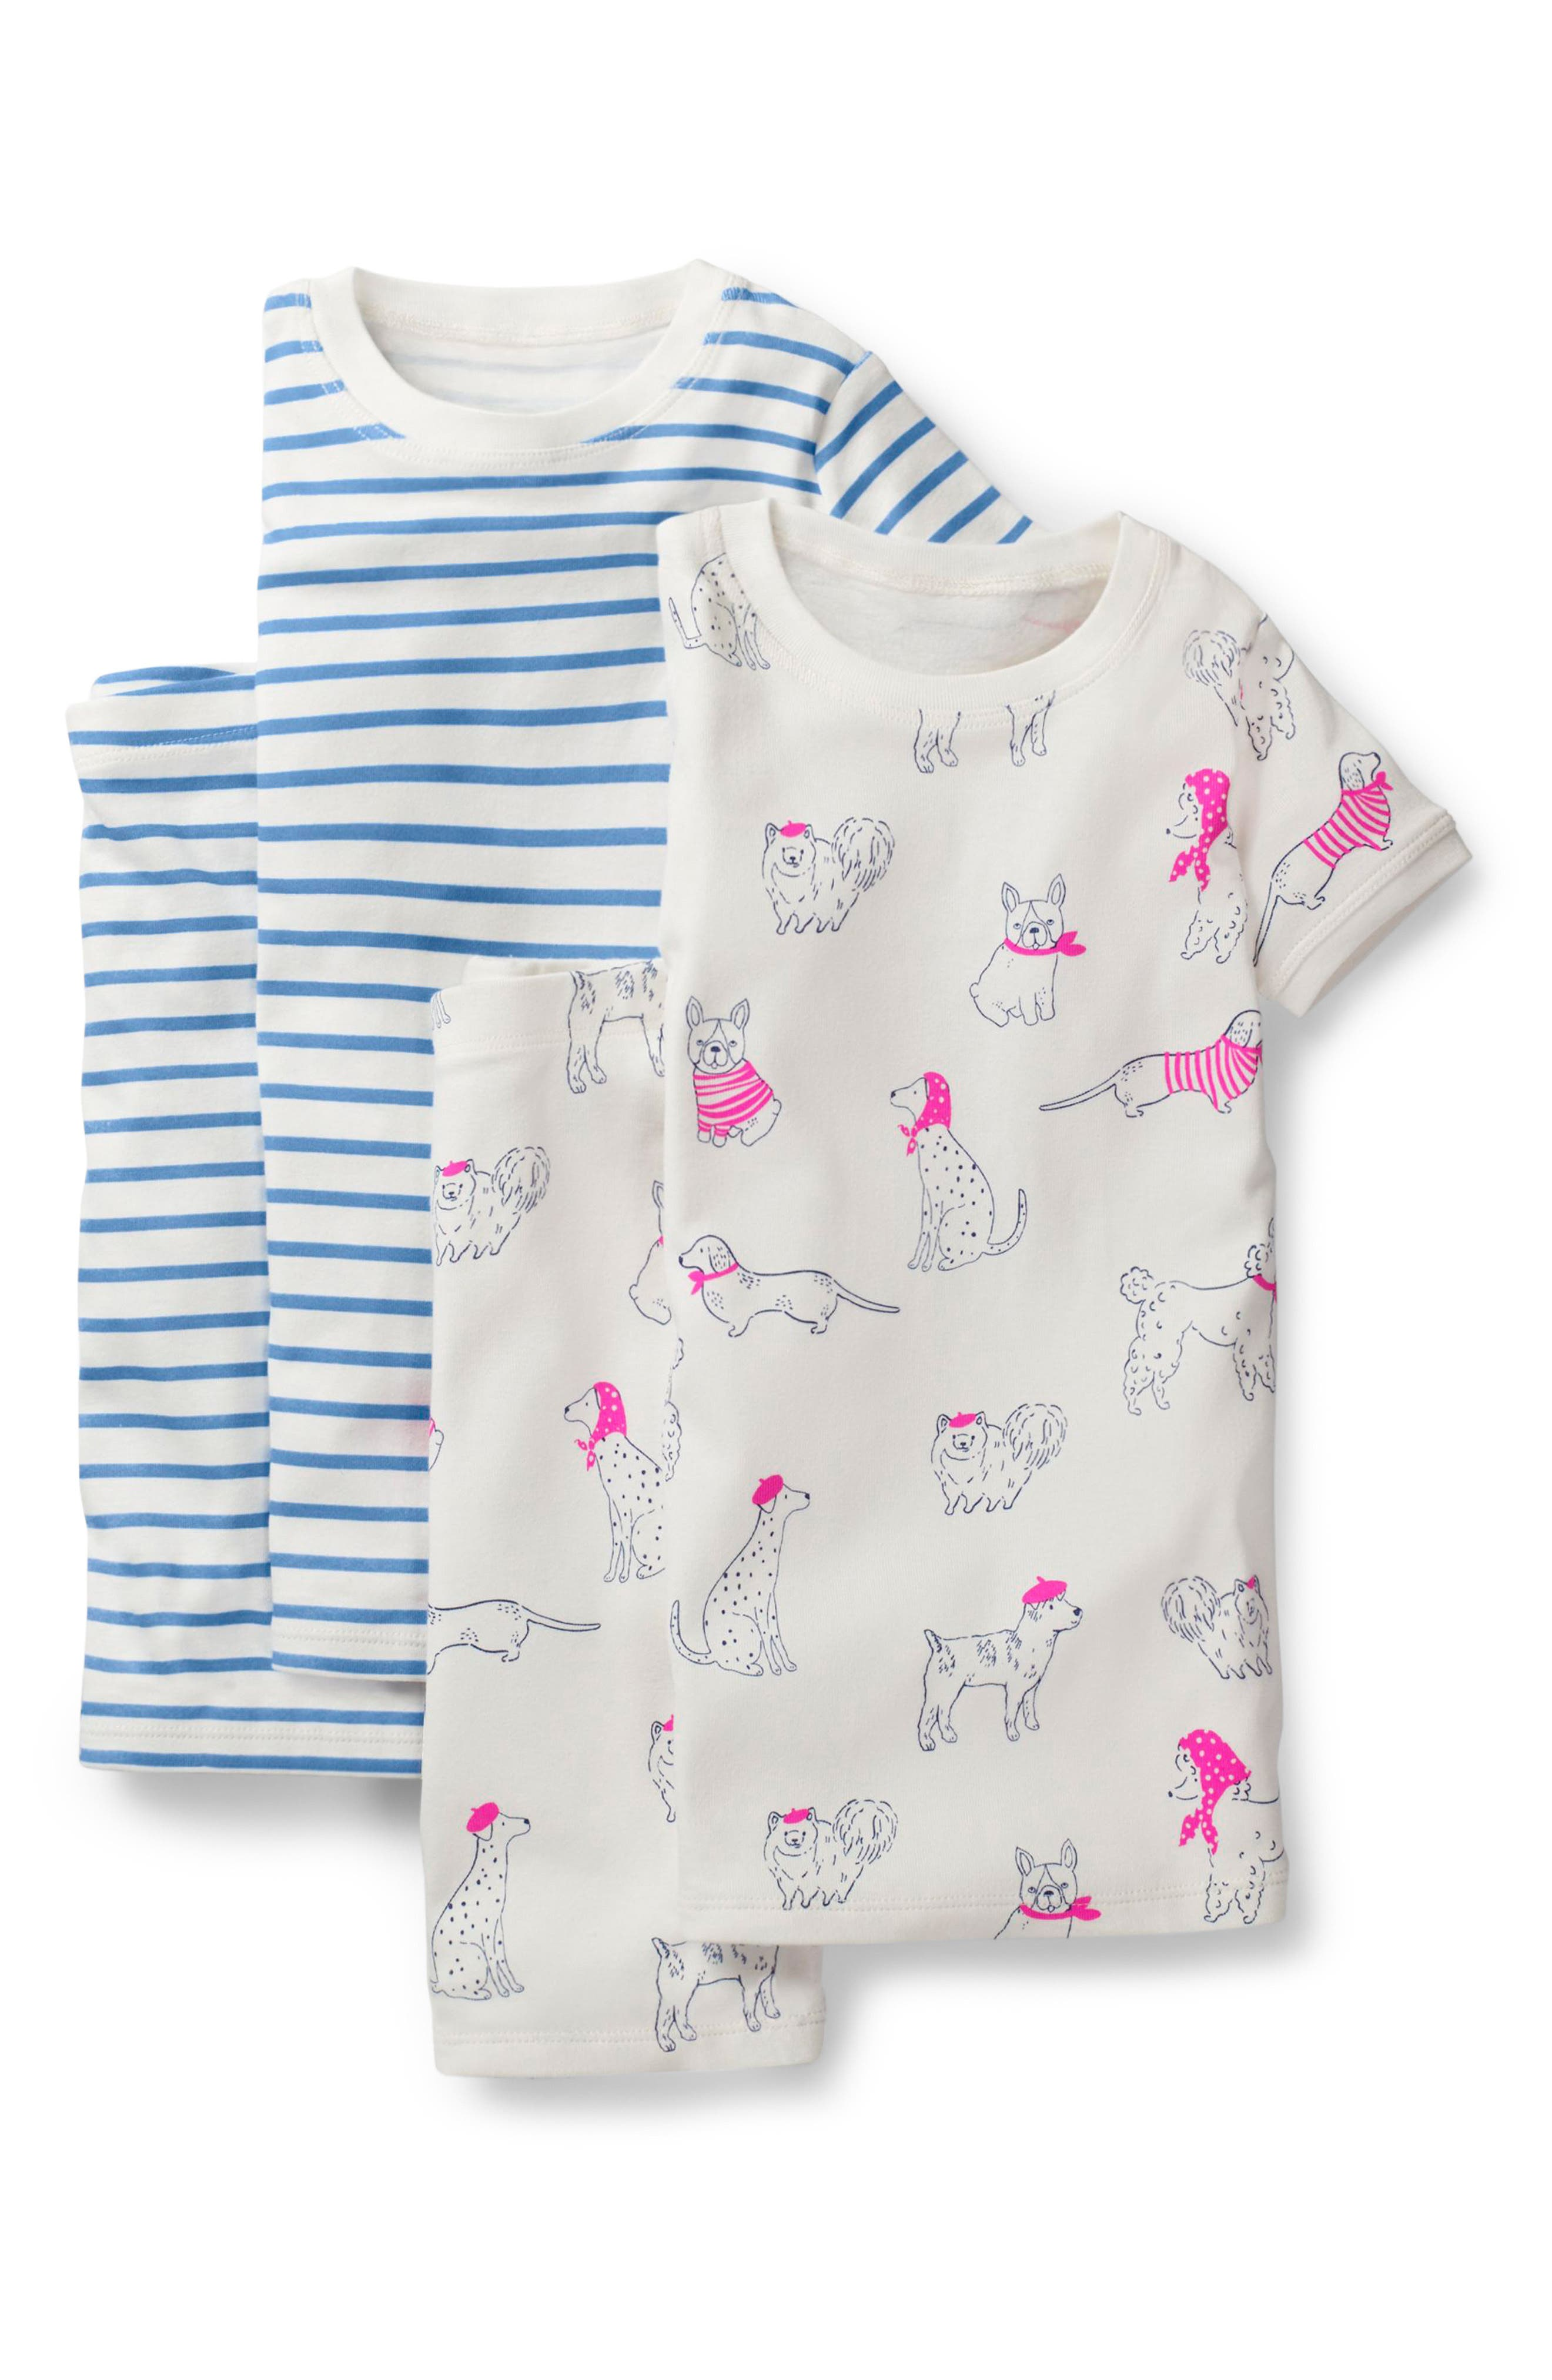 MINI BODEN,                             2-Pack Fitted Two-Piece Pajamas,                             Main thumbnail 1, color,                             IVORY DOODLE DOGS/ LAKE BLUE